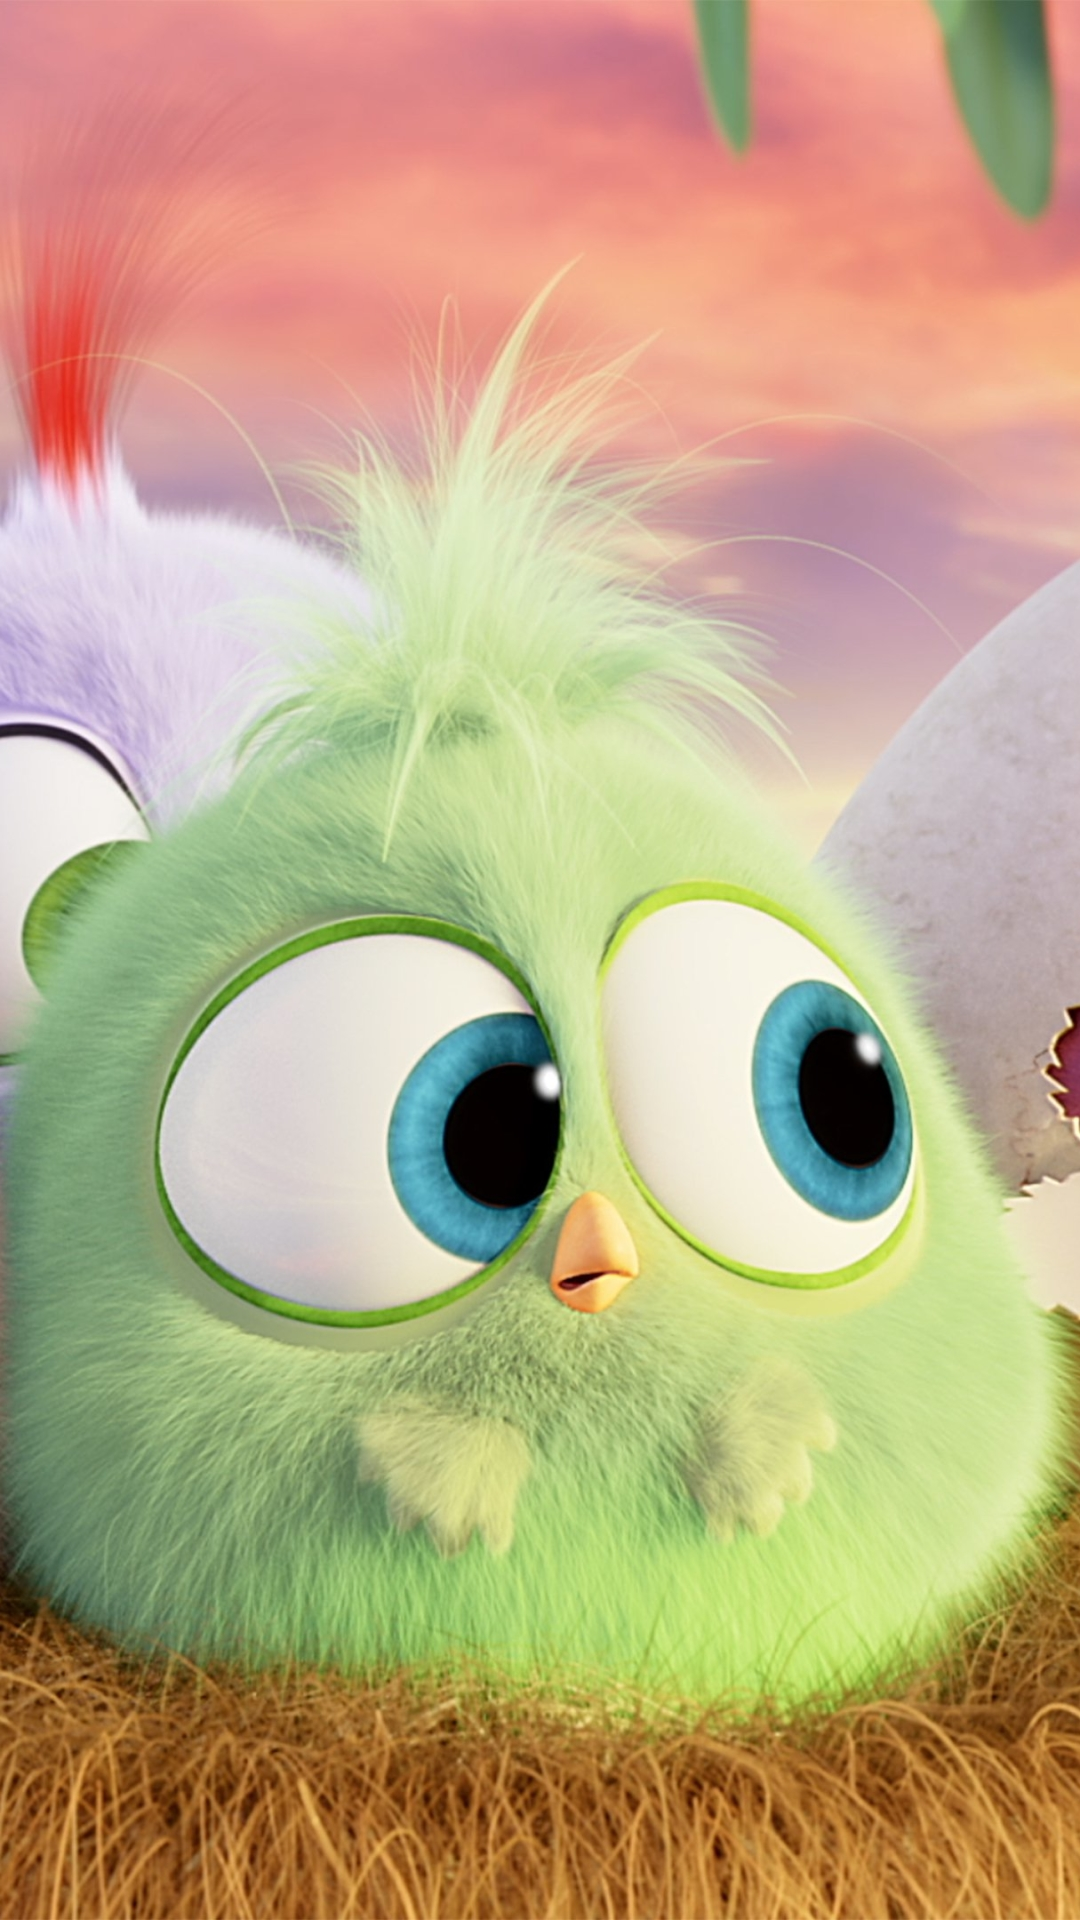 Movie The Angry Birds 1080x1920 Wallpaper ID 685966